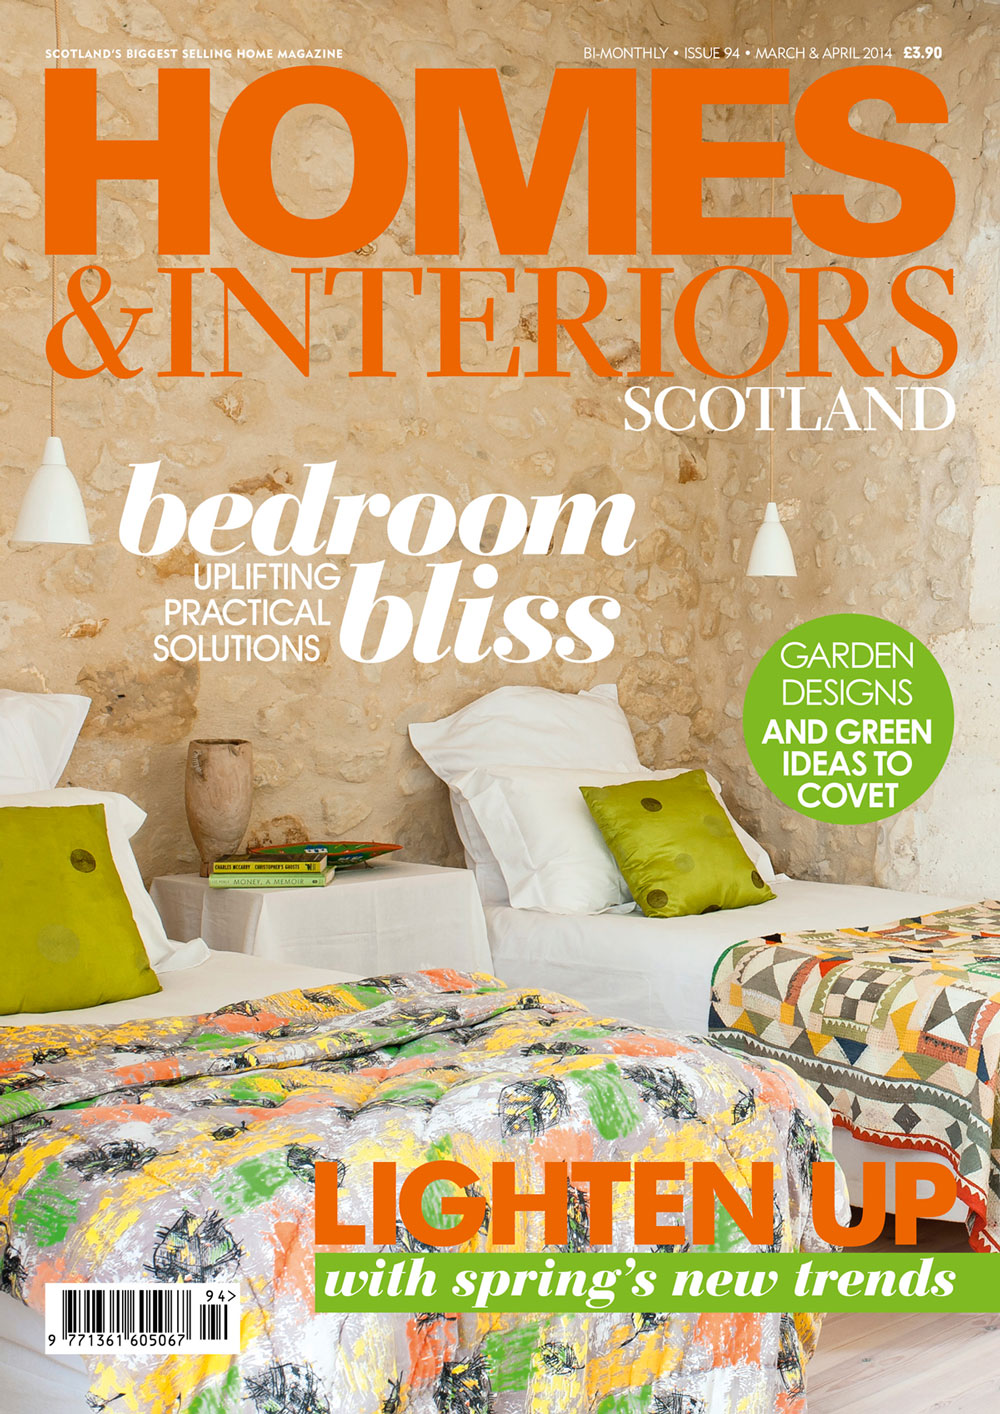 Homes Interiors Scotland